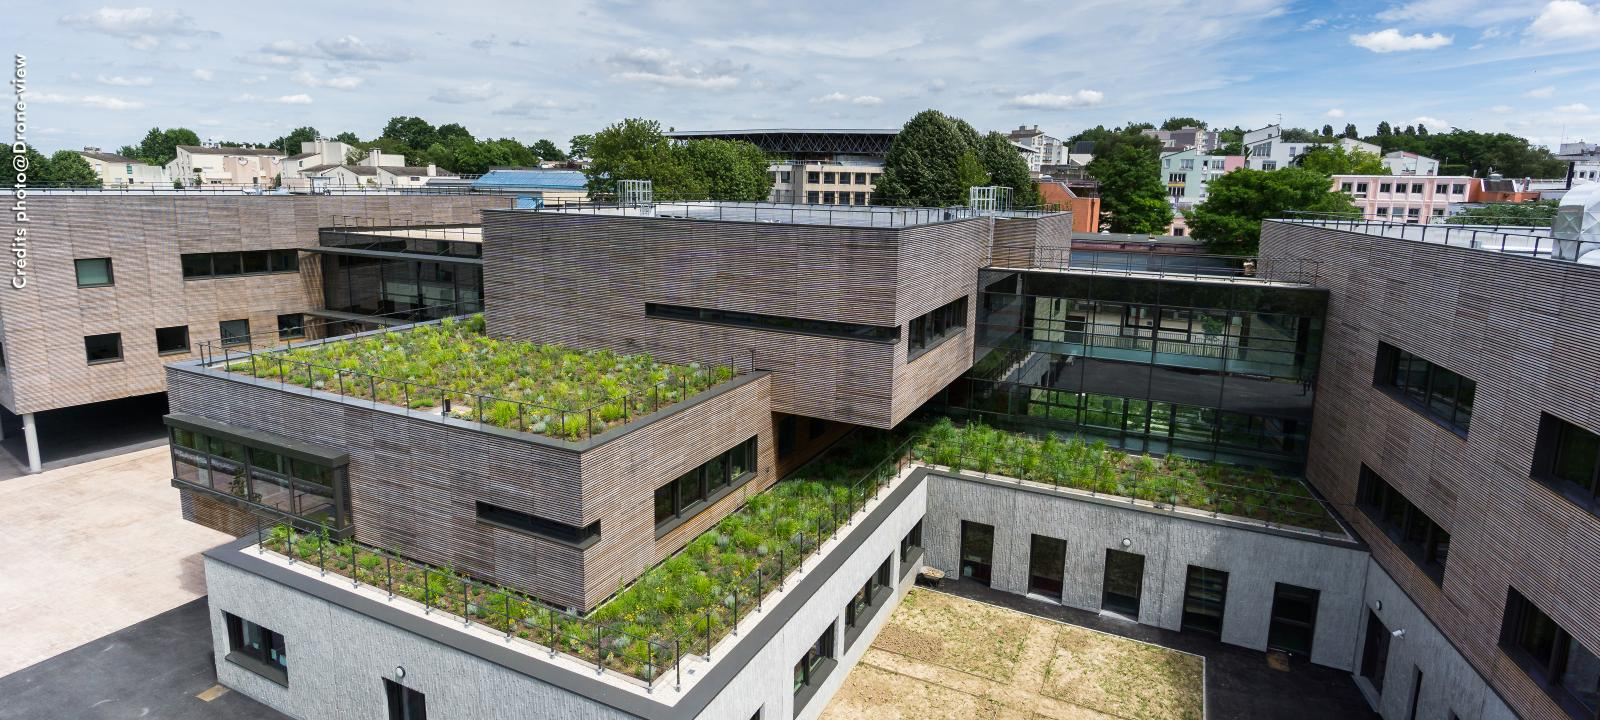 Mastering Green Roofs (1.5 LU/HSW)